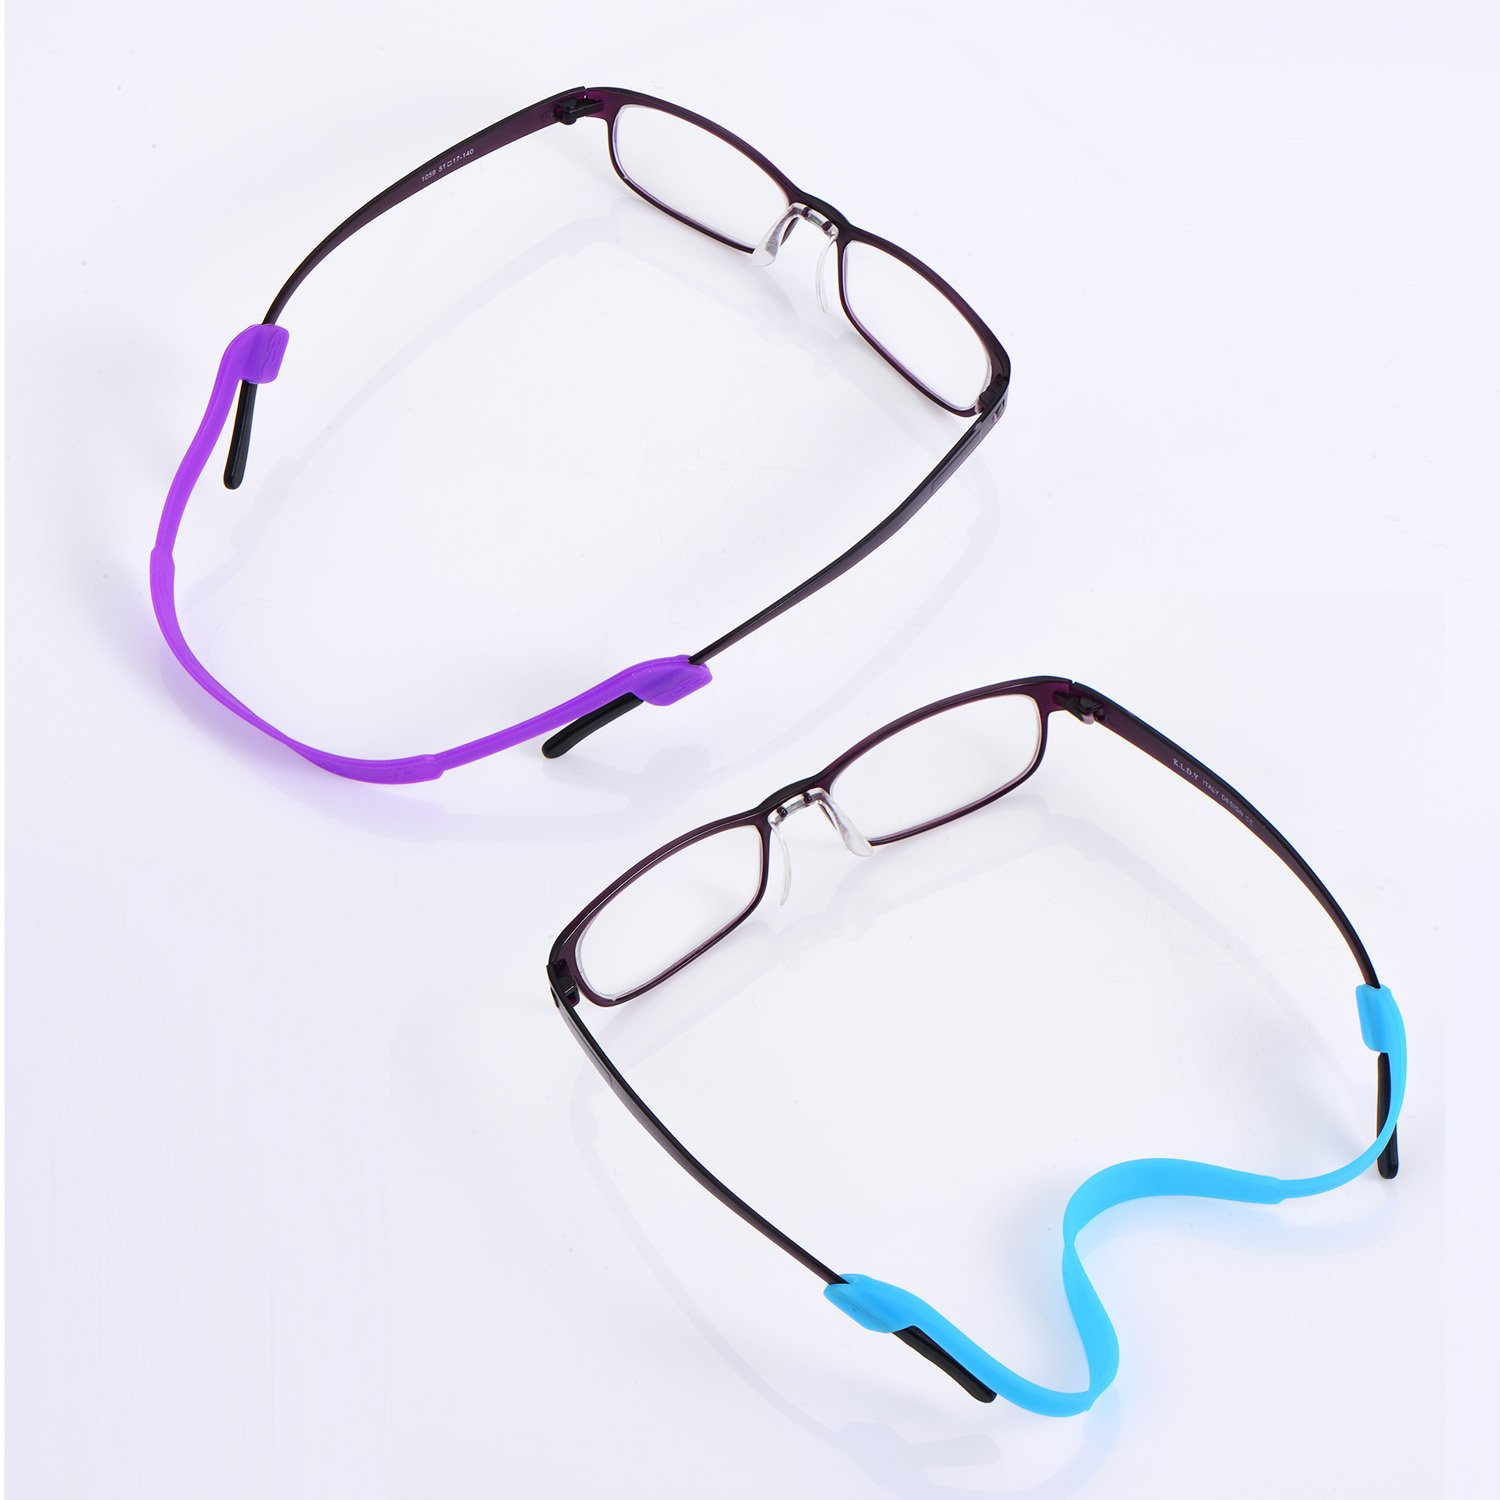 4d797403553 eBoot 10 Pieces Silicone Eyeglass Strap Eyewear Retainers Sports Anti-slip  Elastic Glasses Sunglass Cord Holder for Kids